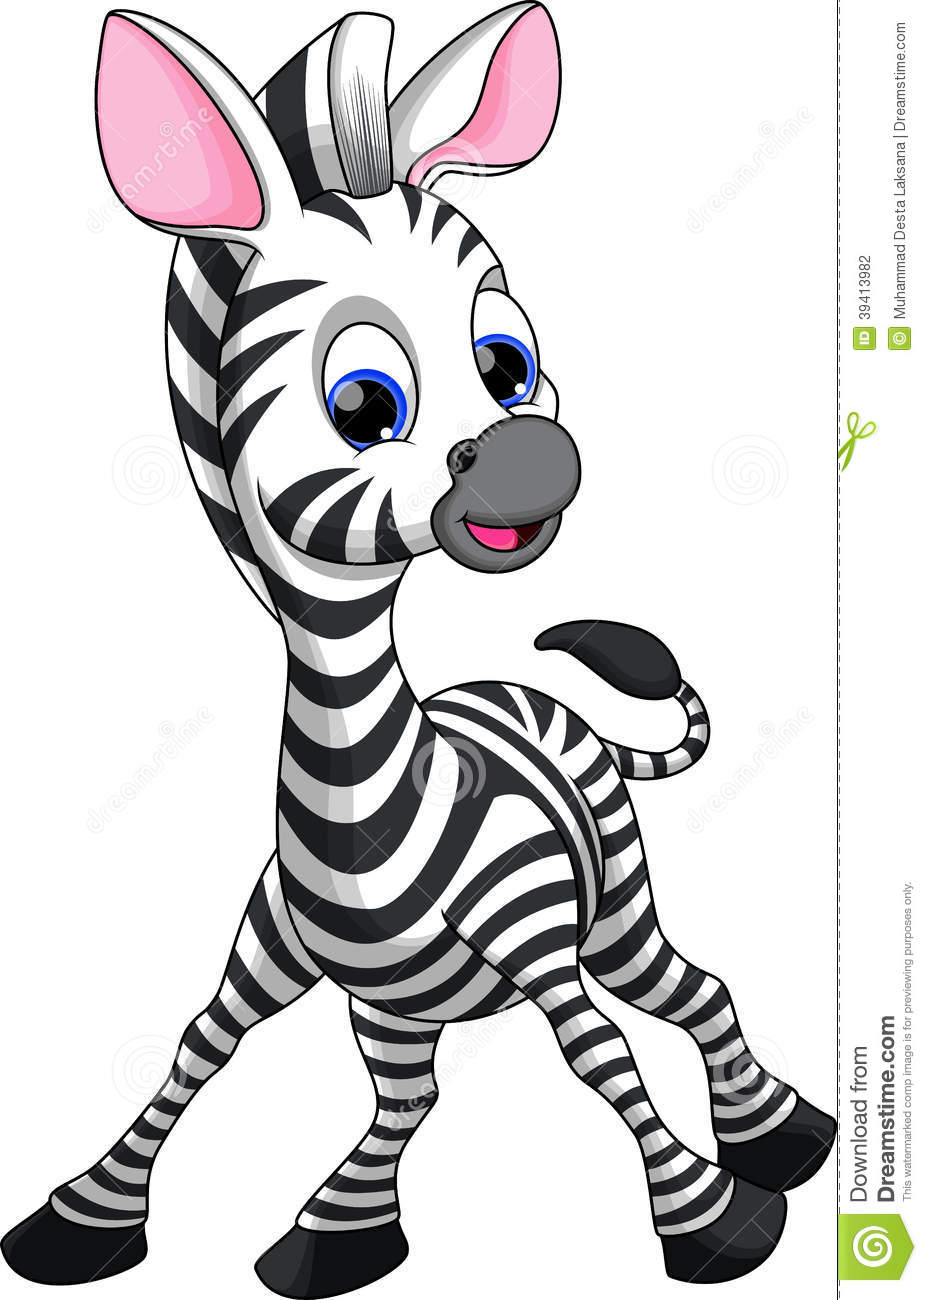 Funny Zebra Cartoon Stock Illustration - Image: 39413982